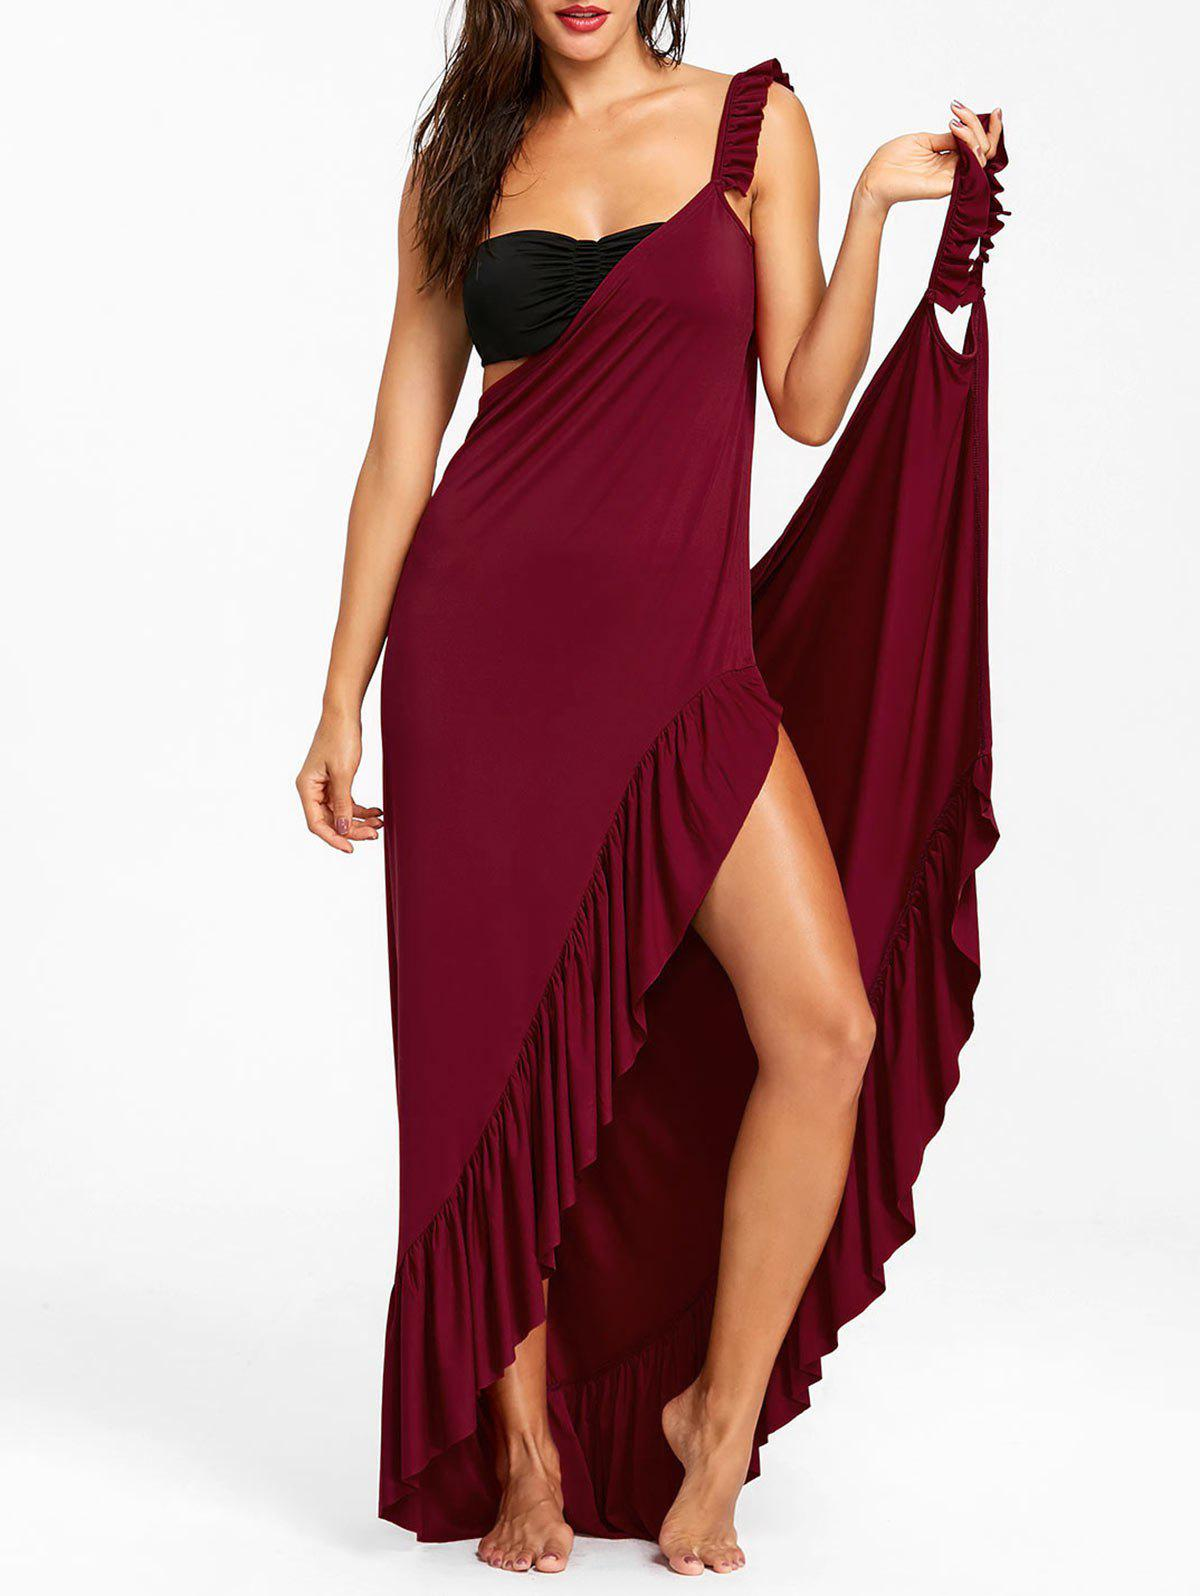 Wrap Flounce Beach Cover Up Dress - RED WINE XL